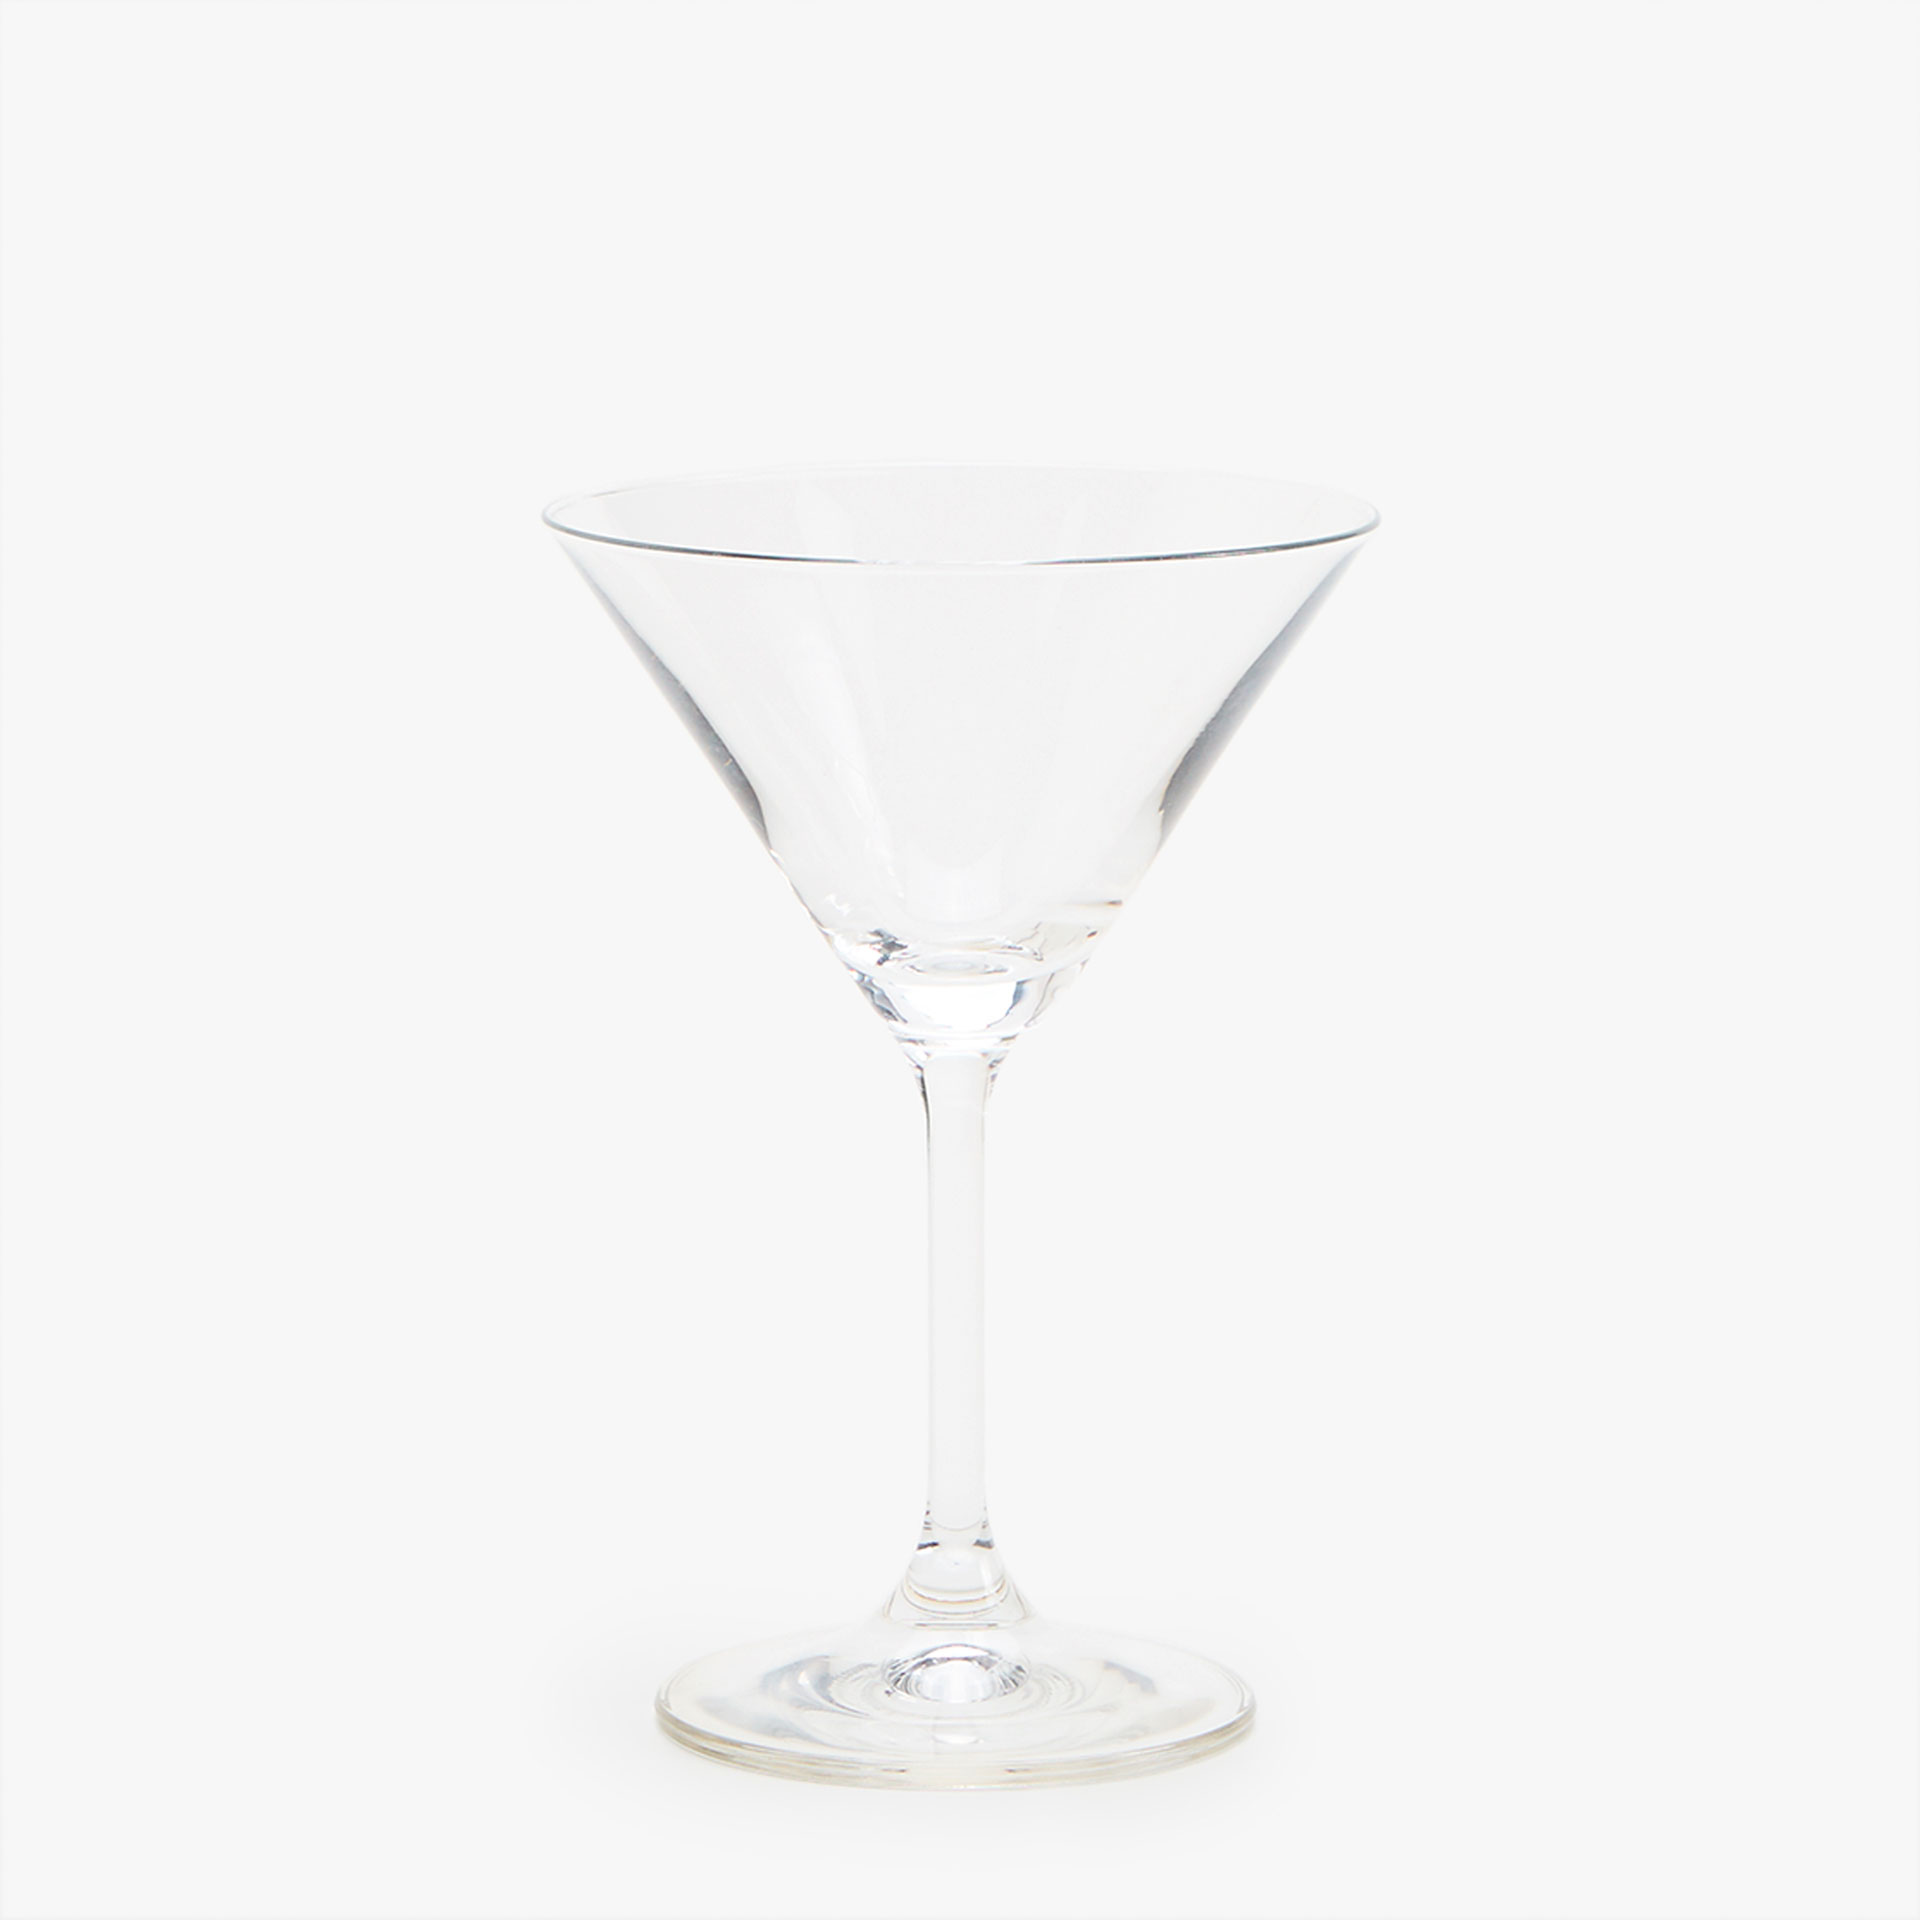 SOLID CHRYSTALLINE MARTINI GLASS